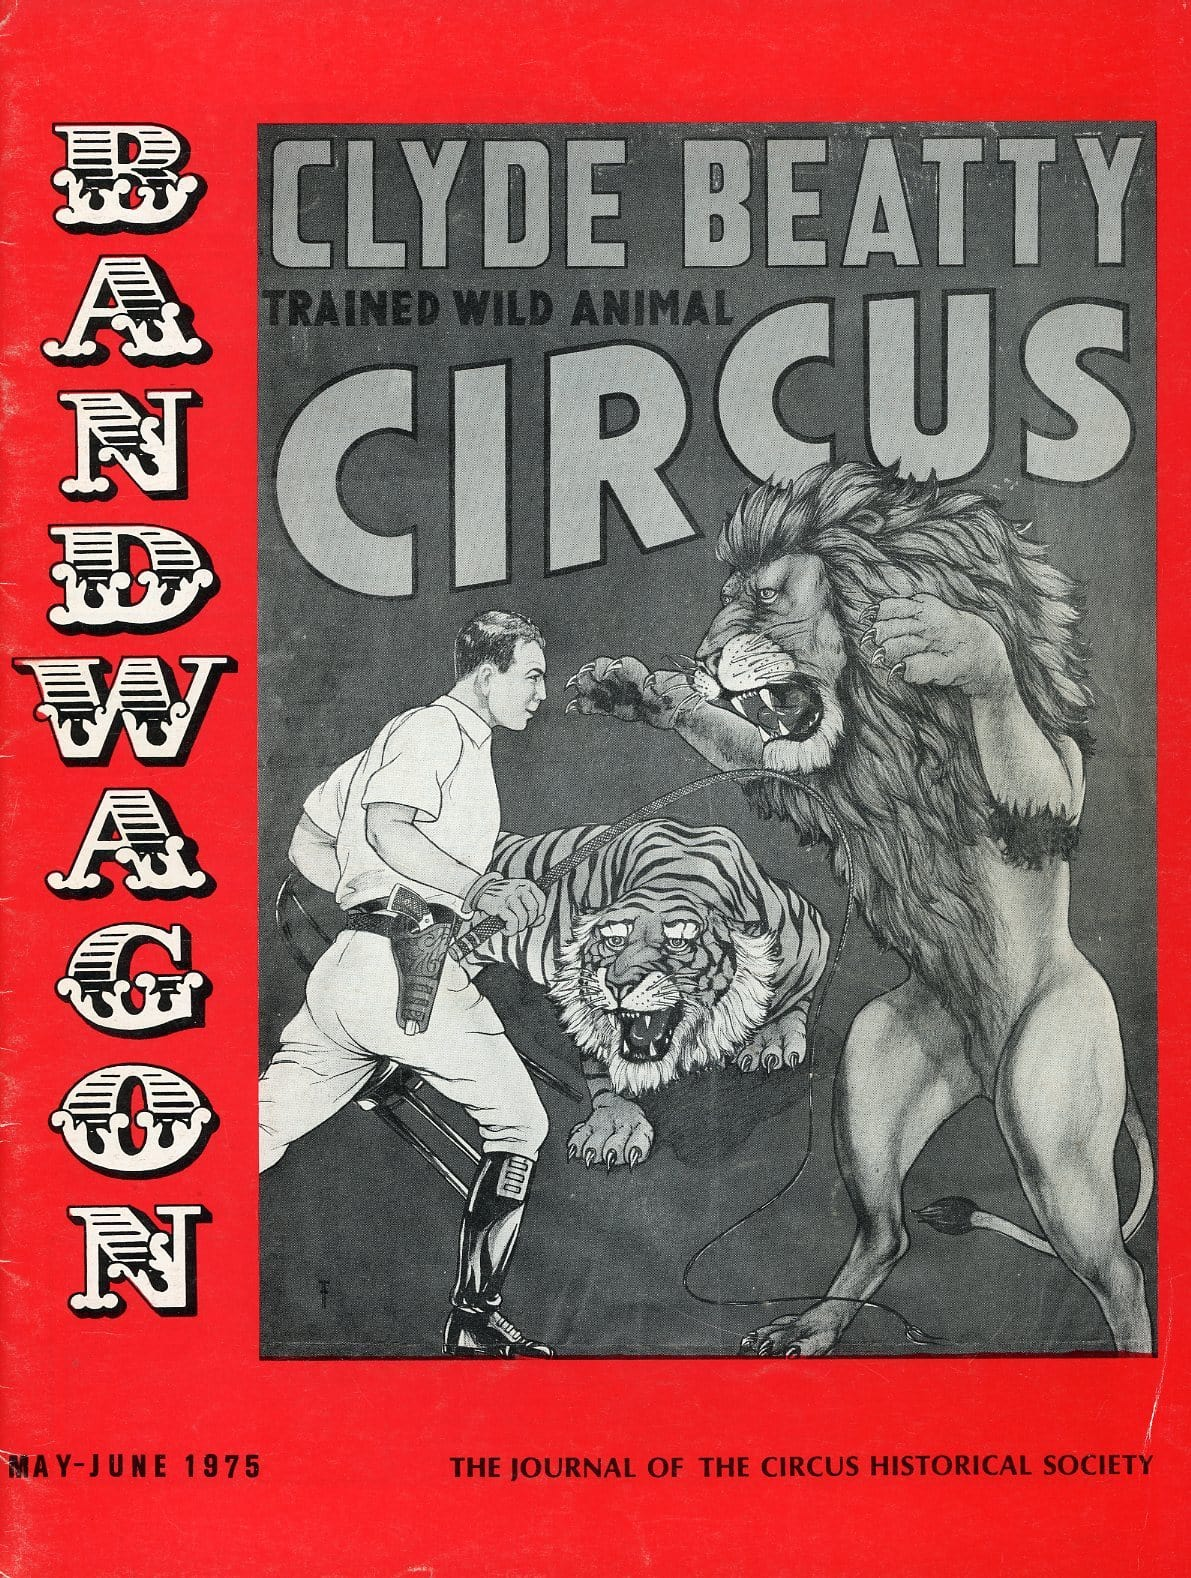 Bandwagon Magazine Back Issue - May/June 1975 - Circus Memorabilia